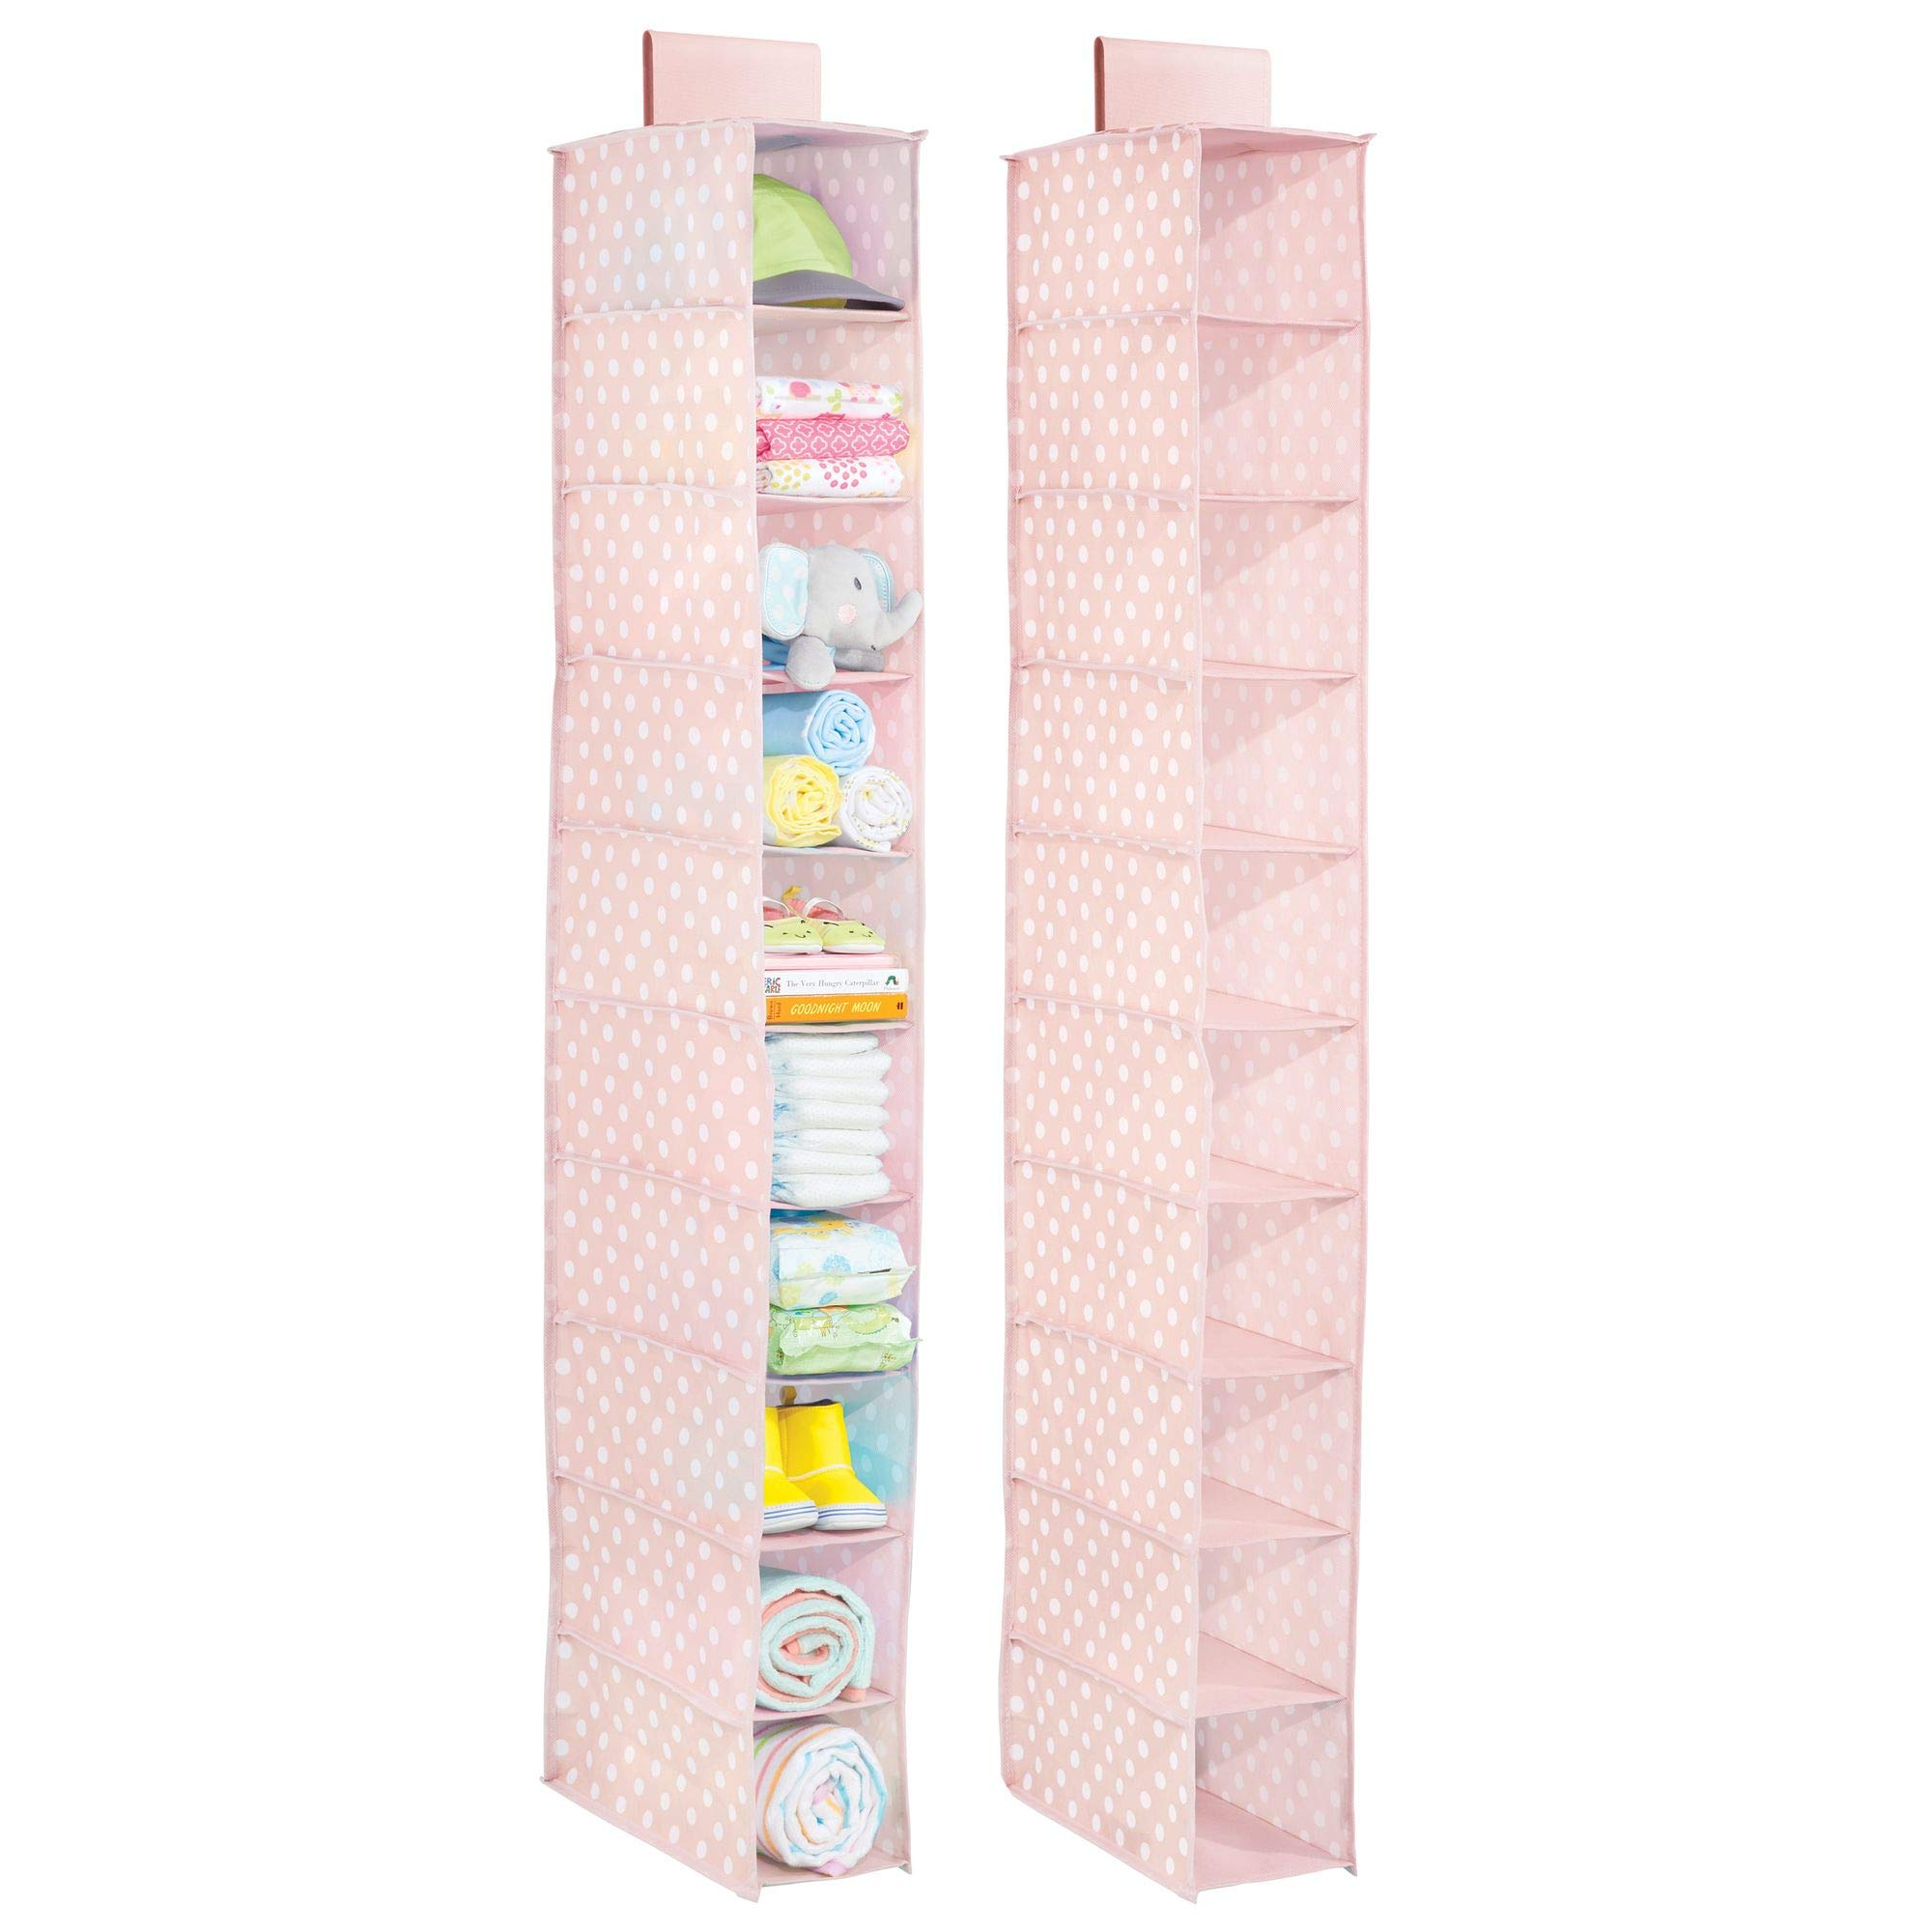 mDesign Soft Fabric Over Closet Rod Hanging Storage Organizer with 10 Shelves for Child/Kids Room or Nursery - Pack of 2, Polka Dot Pattern, Light Pink with White Dots by mDesign